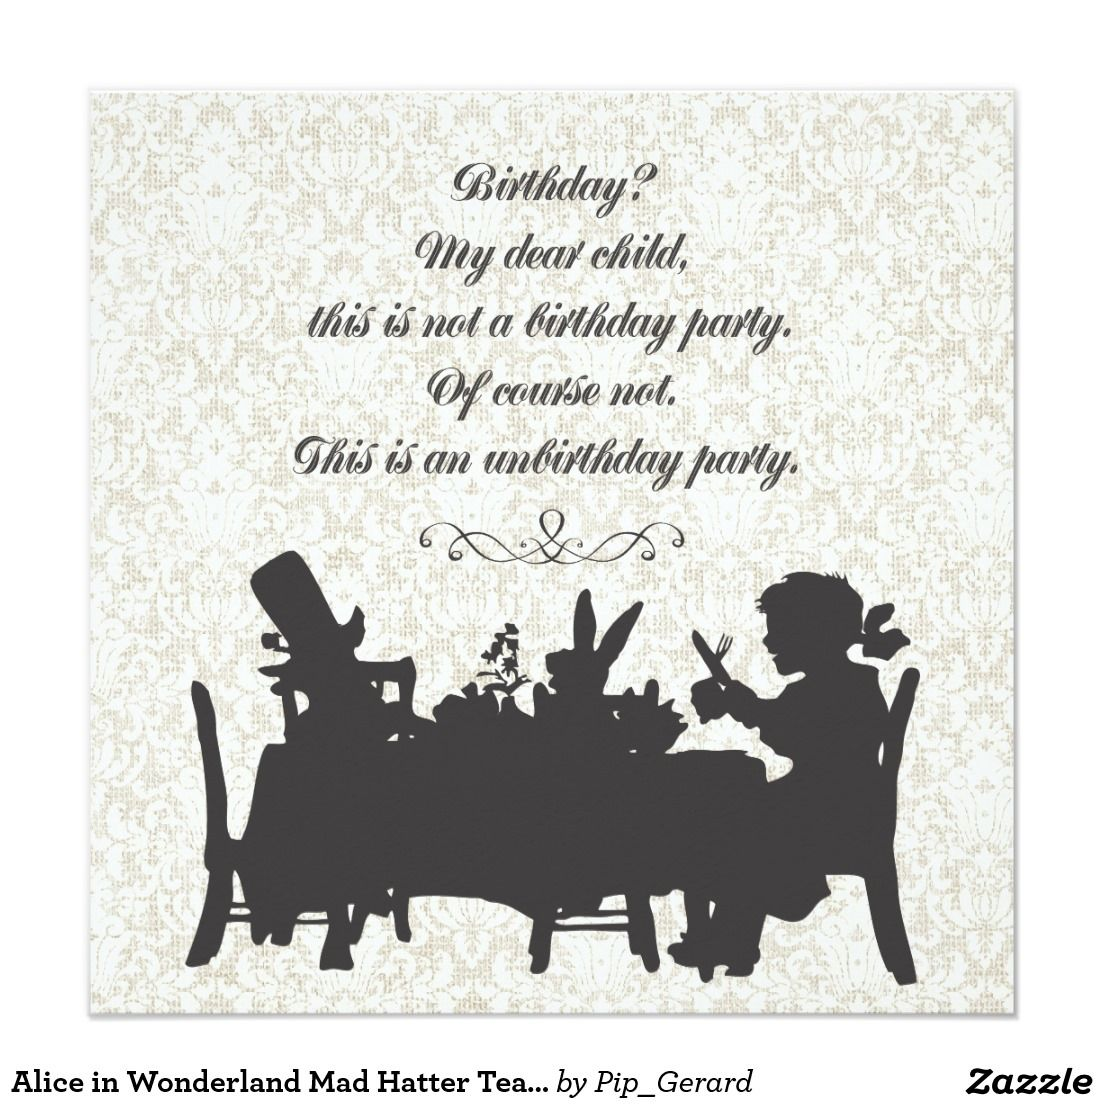 Alice in Wonderland Mad Hatter Tea Party Birthday Card | Tea party ...